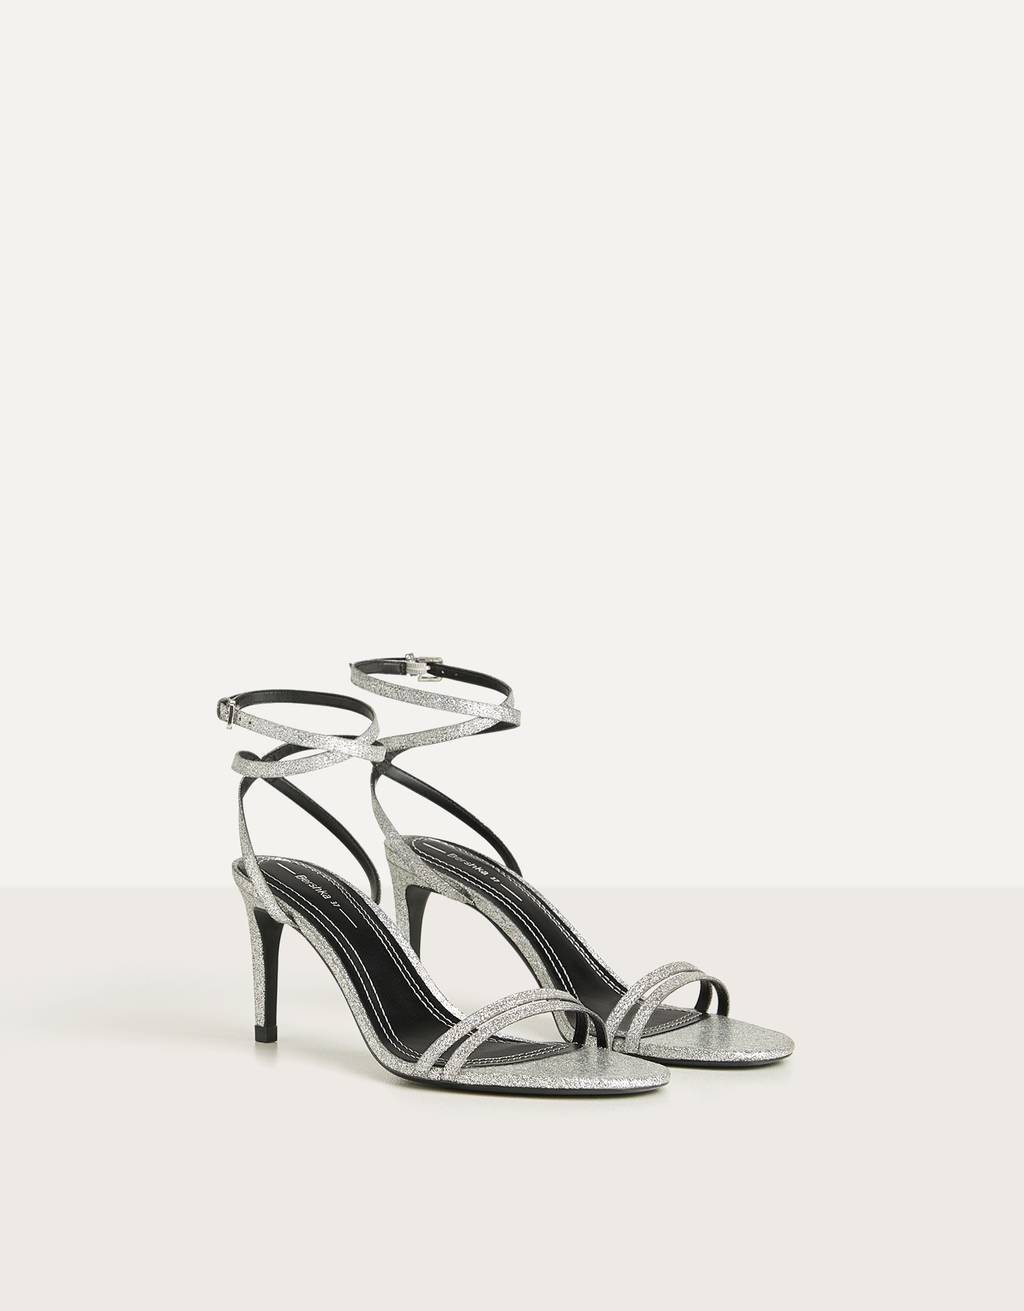 High-heel strappy sandals with double ankle strap